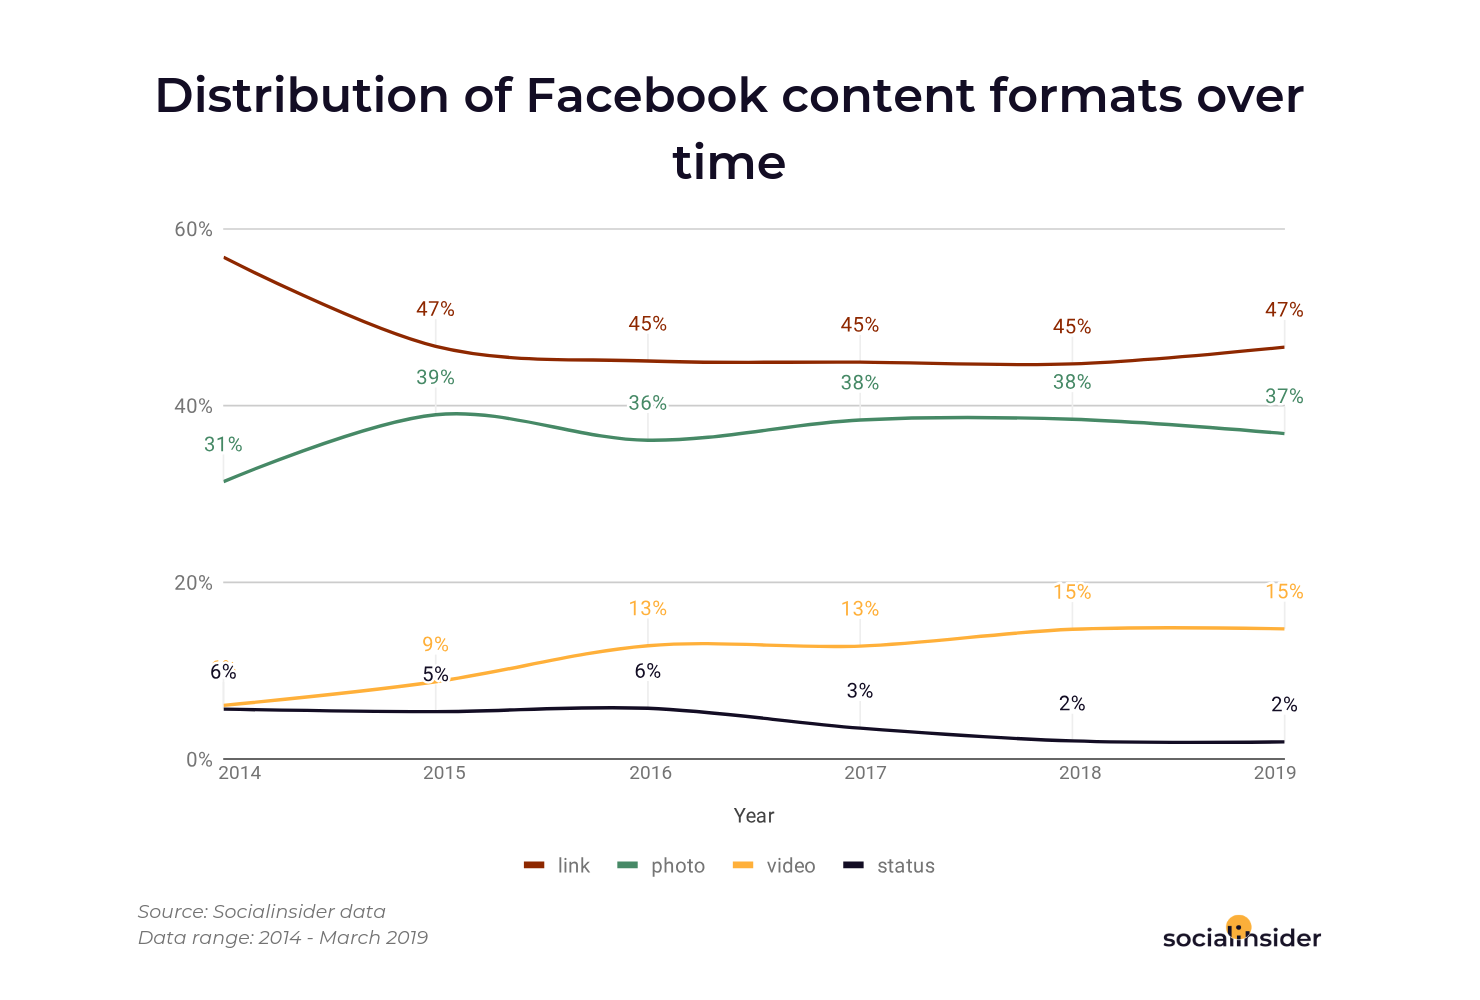 Videos on Facebook are increasing by 2% from 2017 to 2018